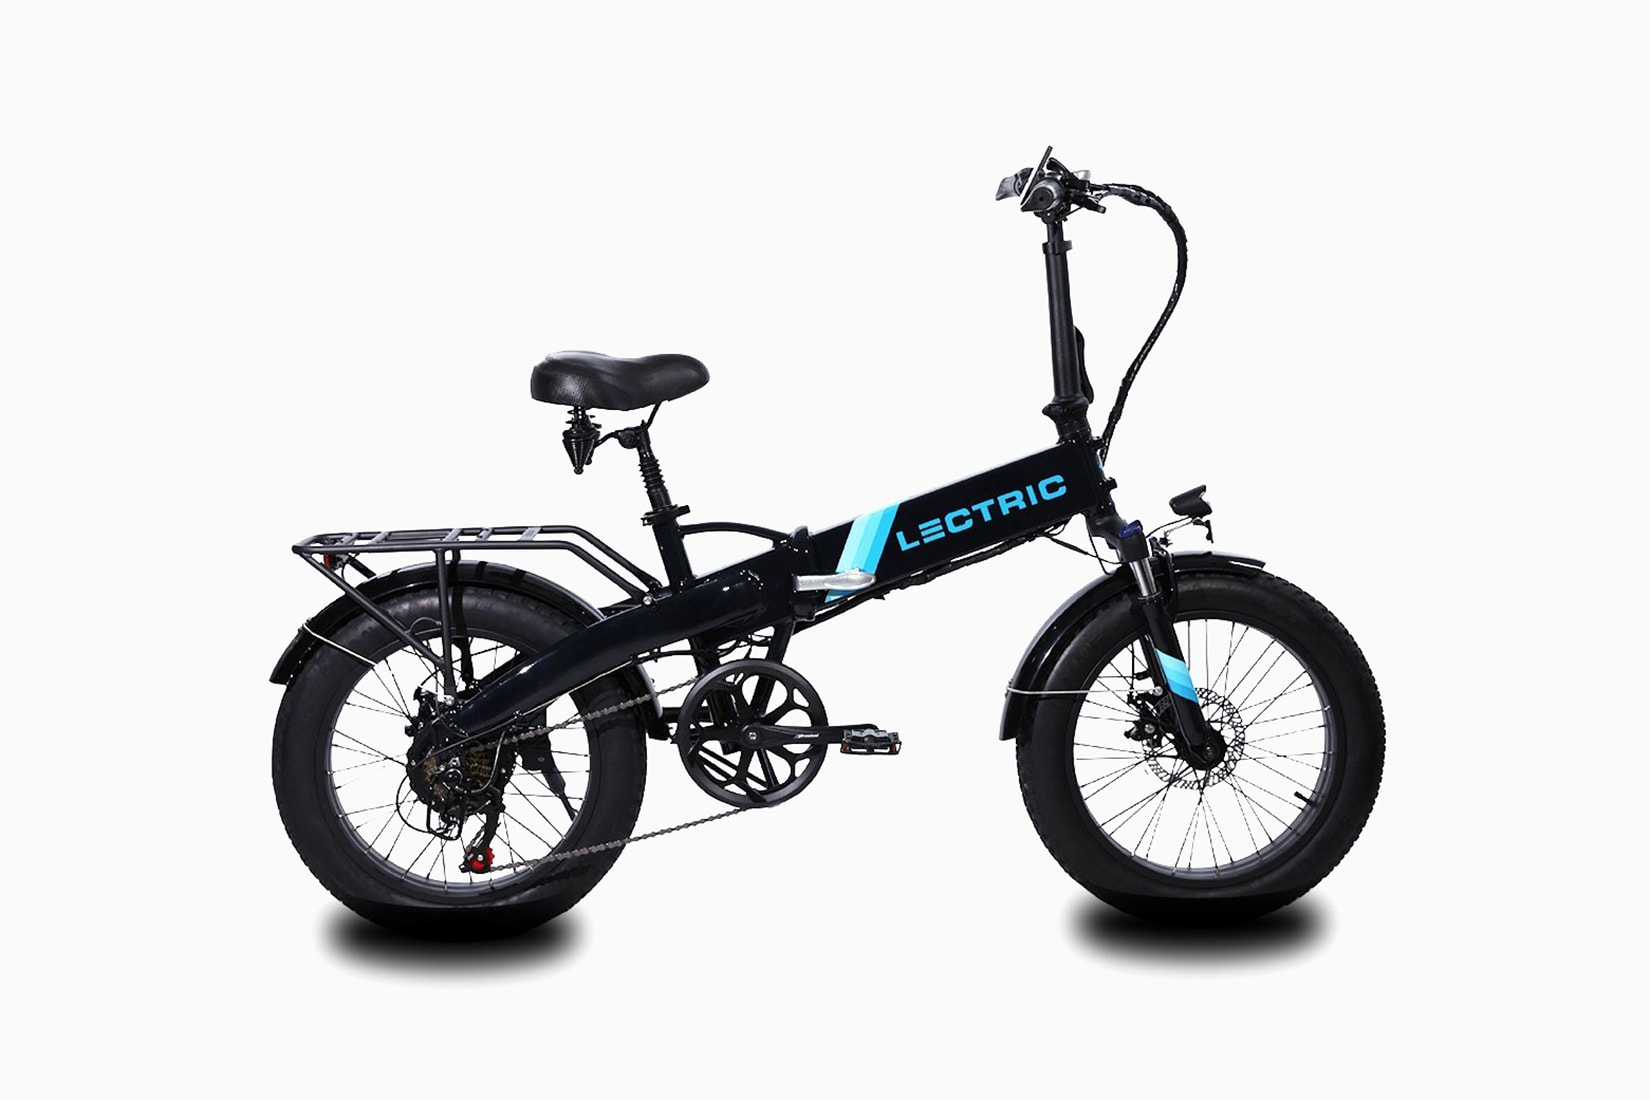 best electric bikes foldable lectric xp review - Luxe Digital